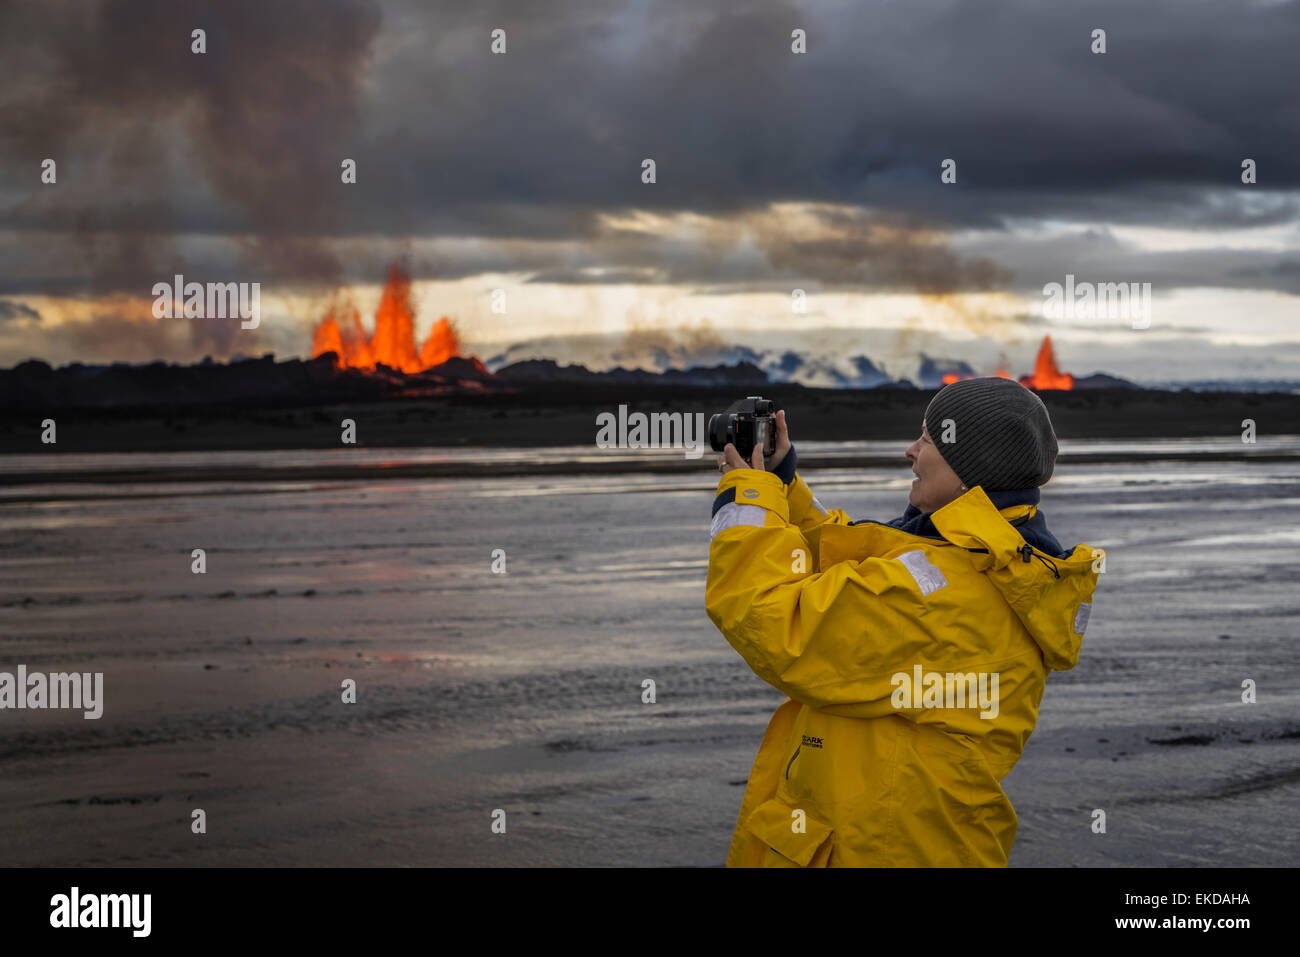 Woman taking pictures at the eruption, Holuhraun Fissure,  Bardarbunga Volcano, Iceland - Stock Image